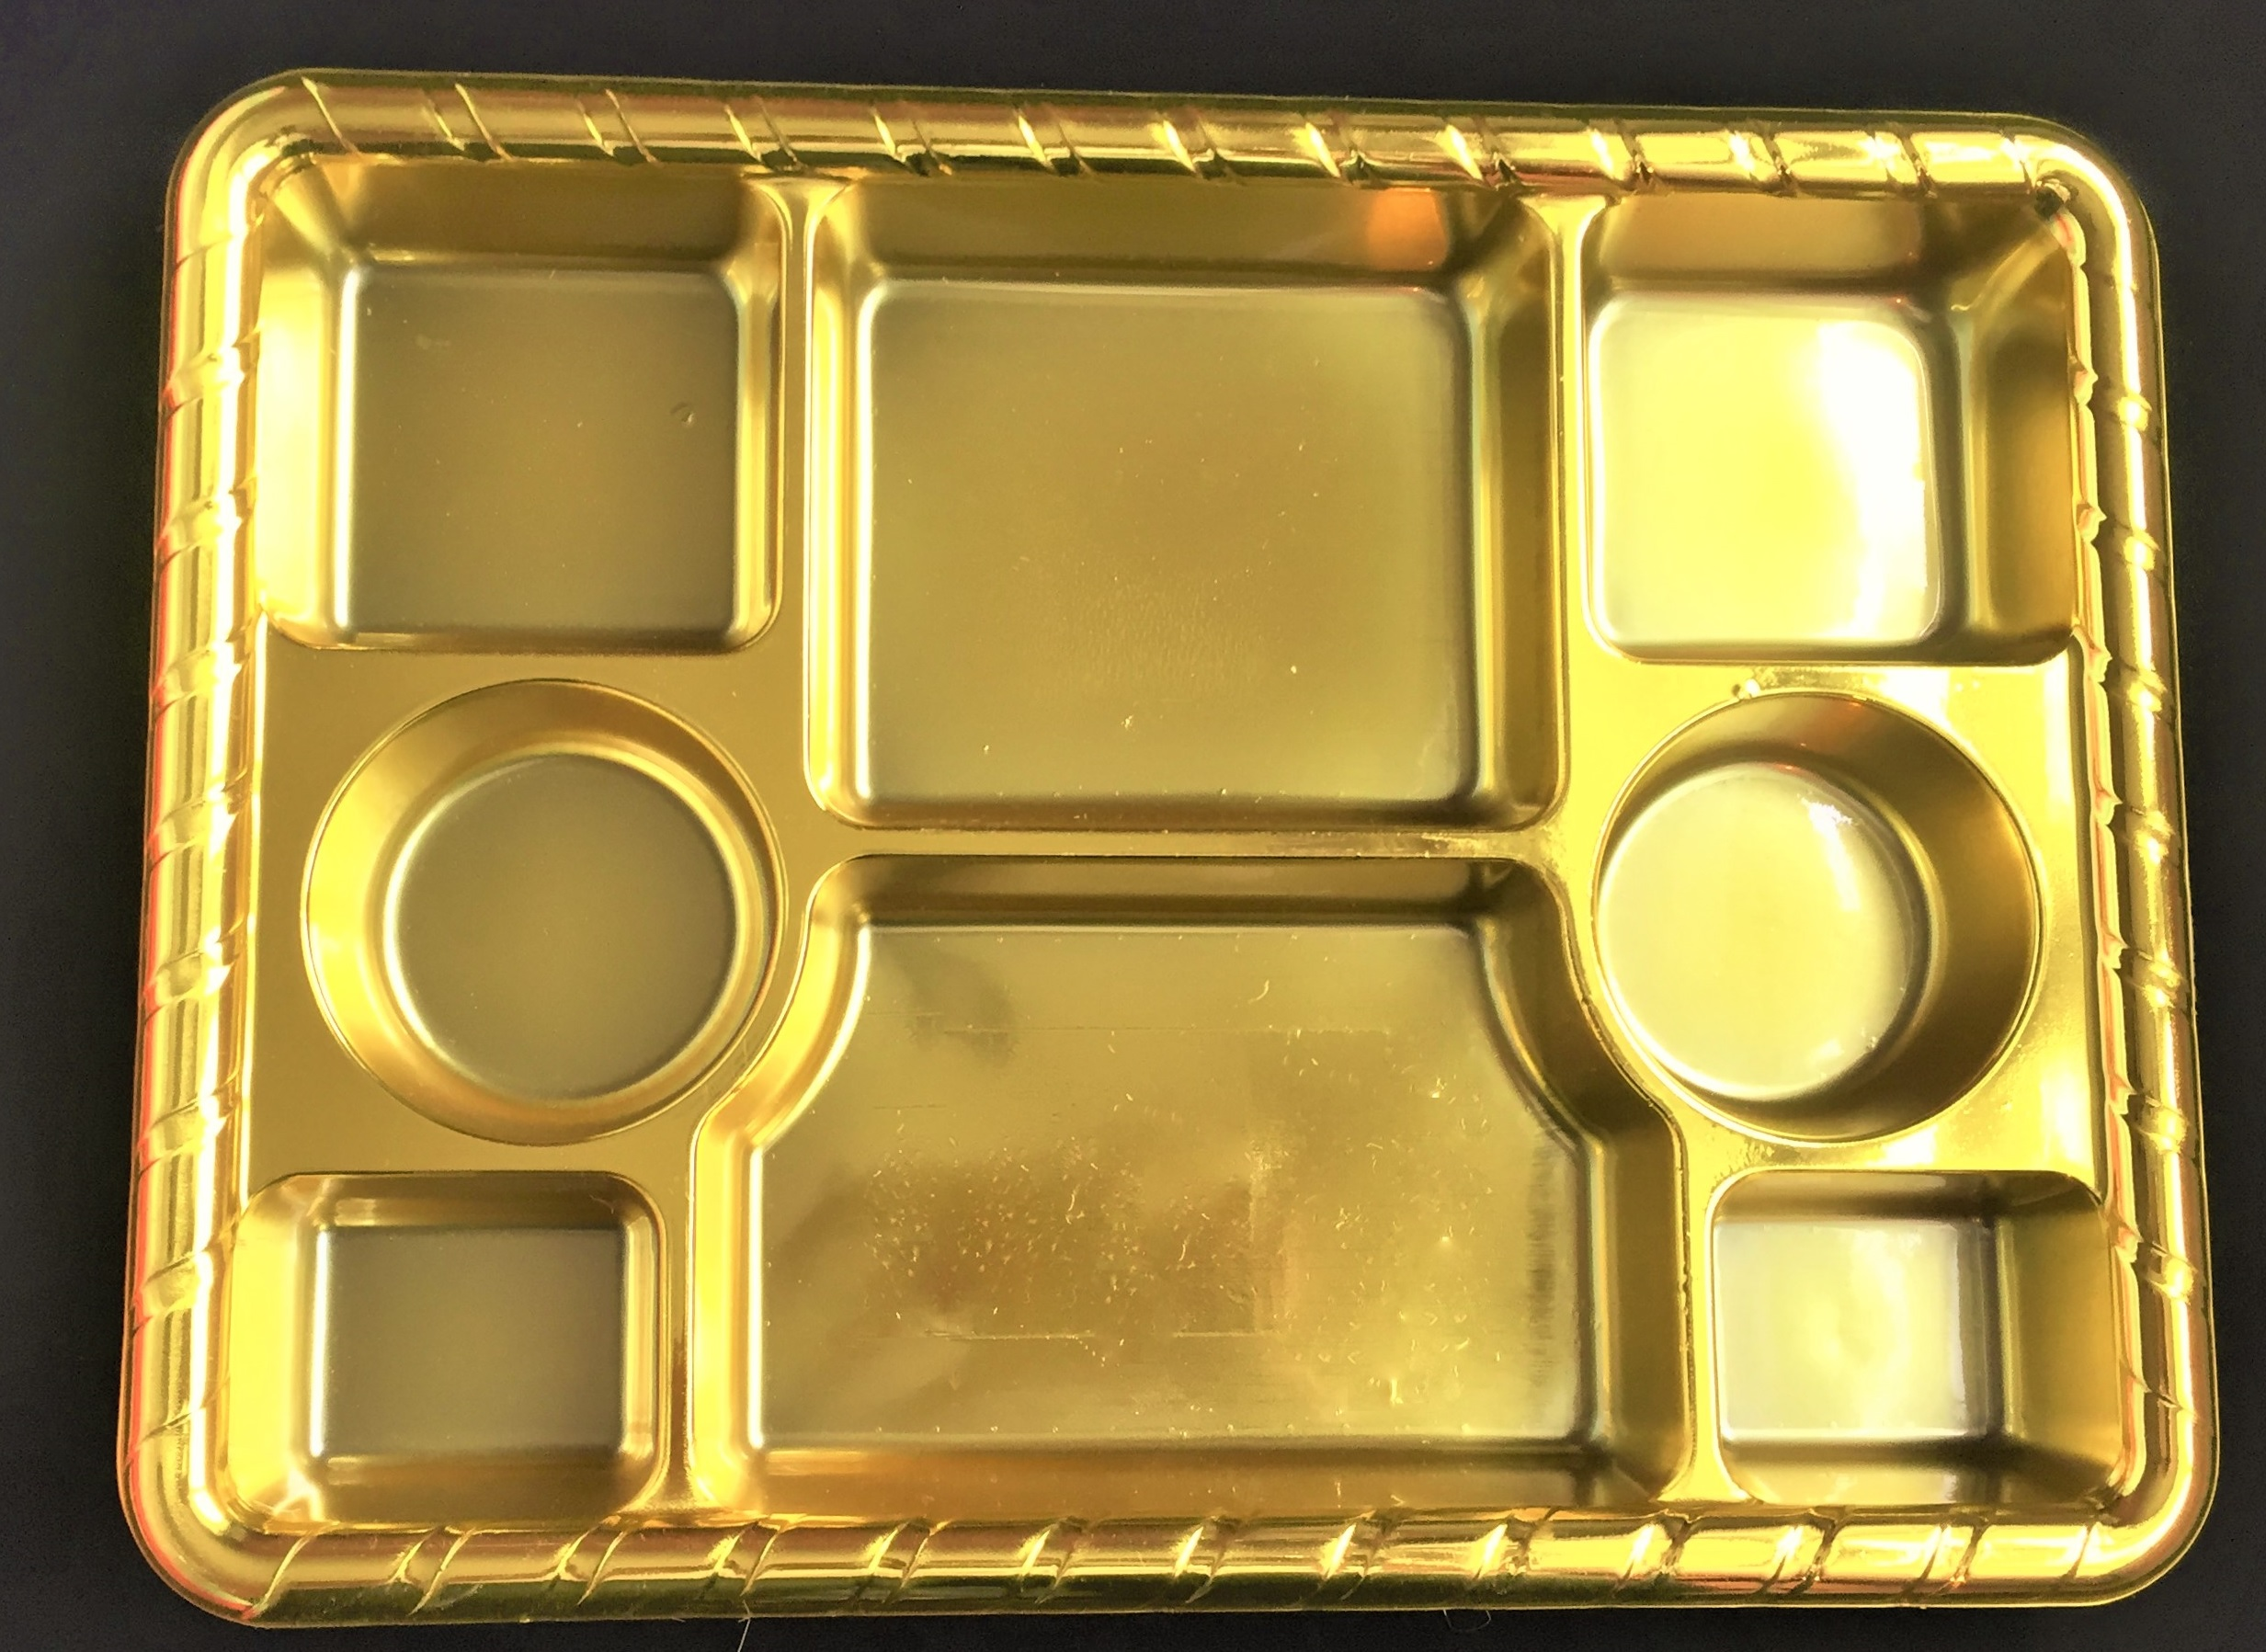 8 compartment gold plates